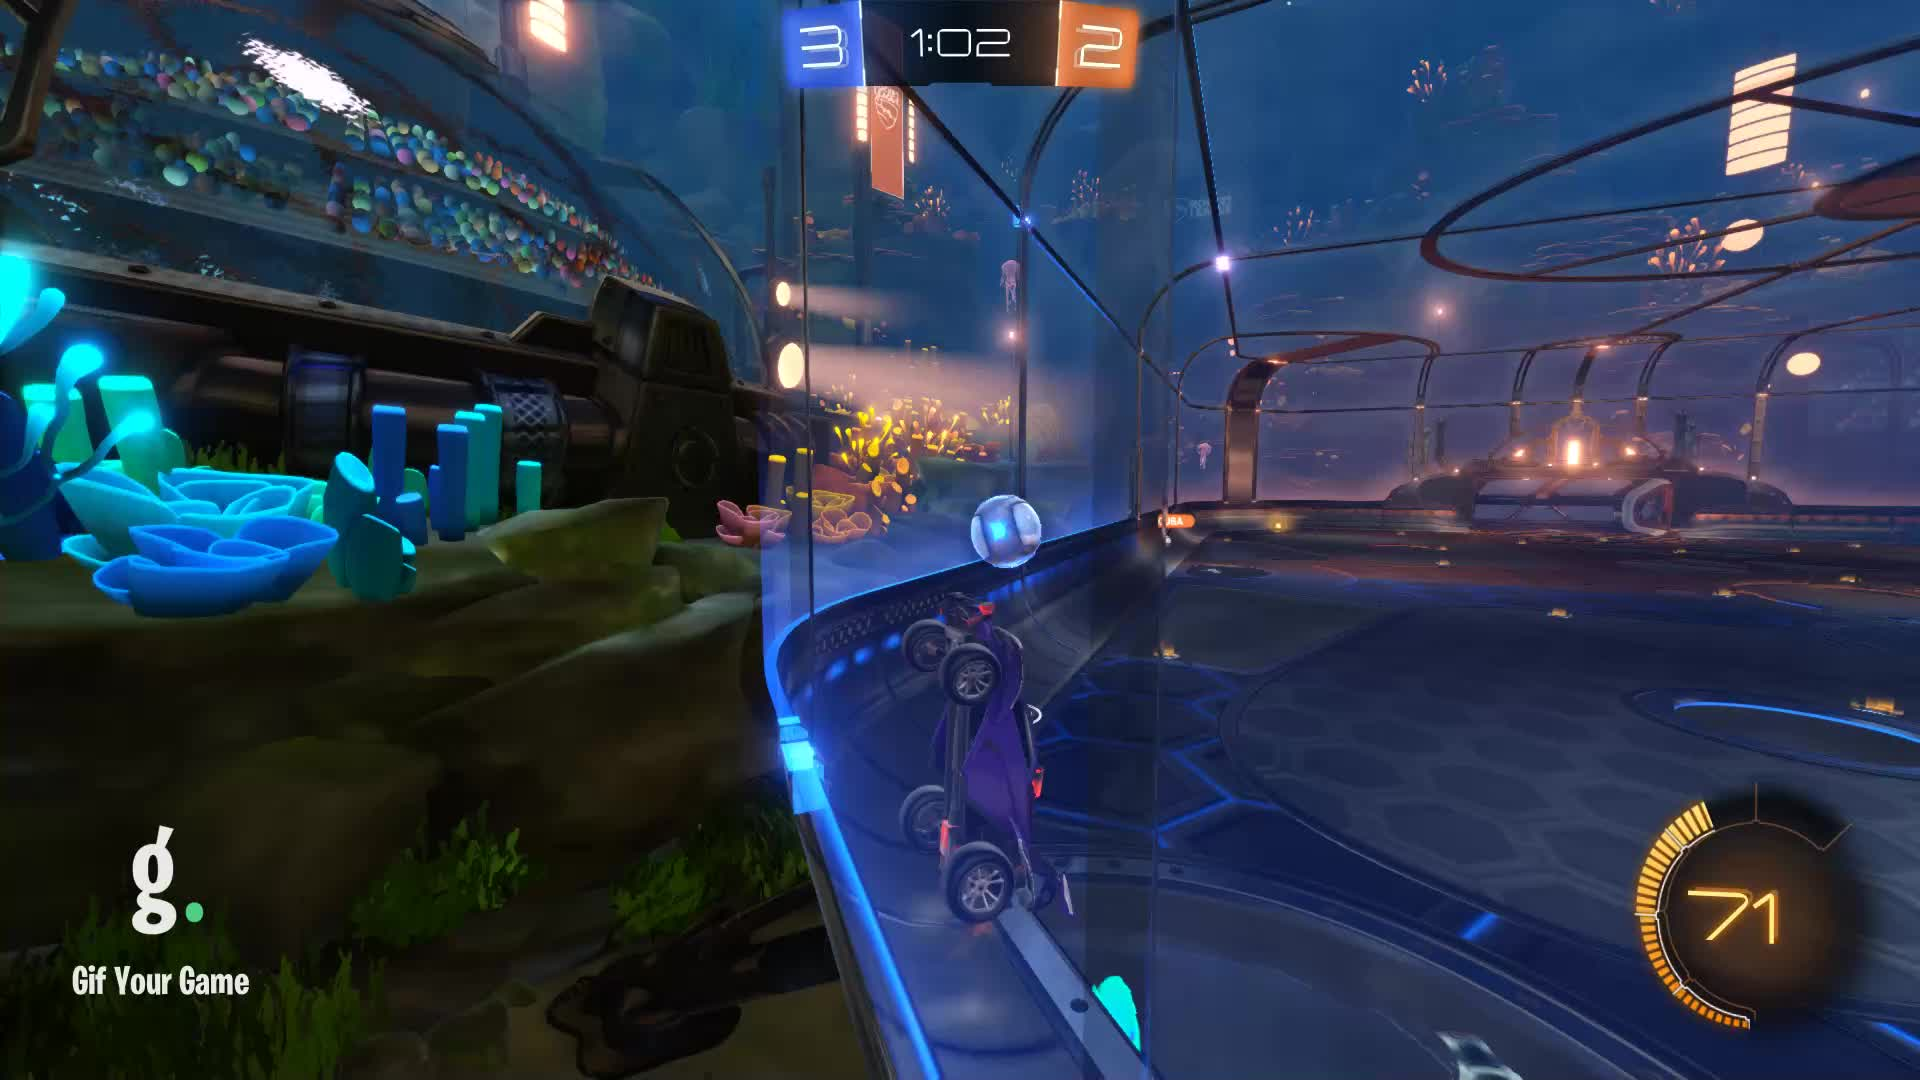 Gif Your Game, GifYourGame, MizuOkami, Rocket League, RocketLeague, Shot 11: Scuba GIFs